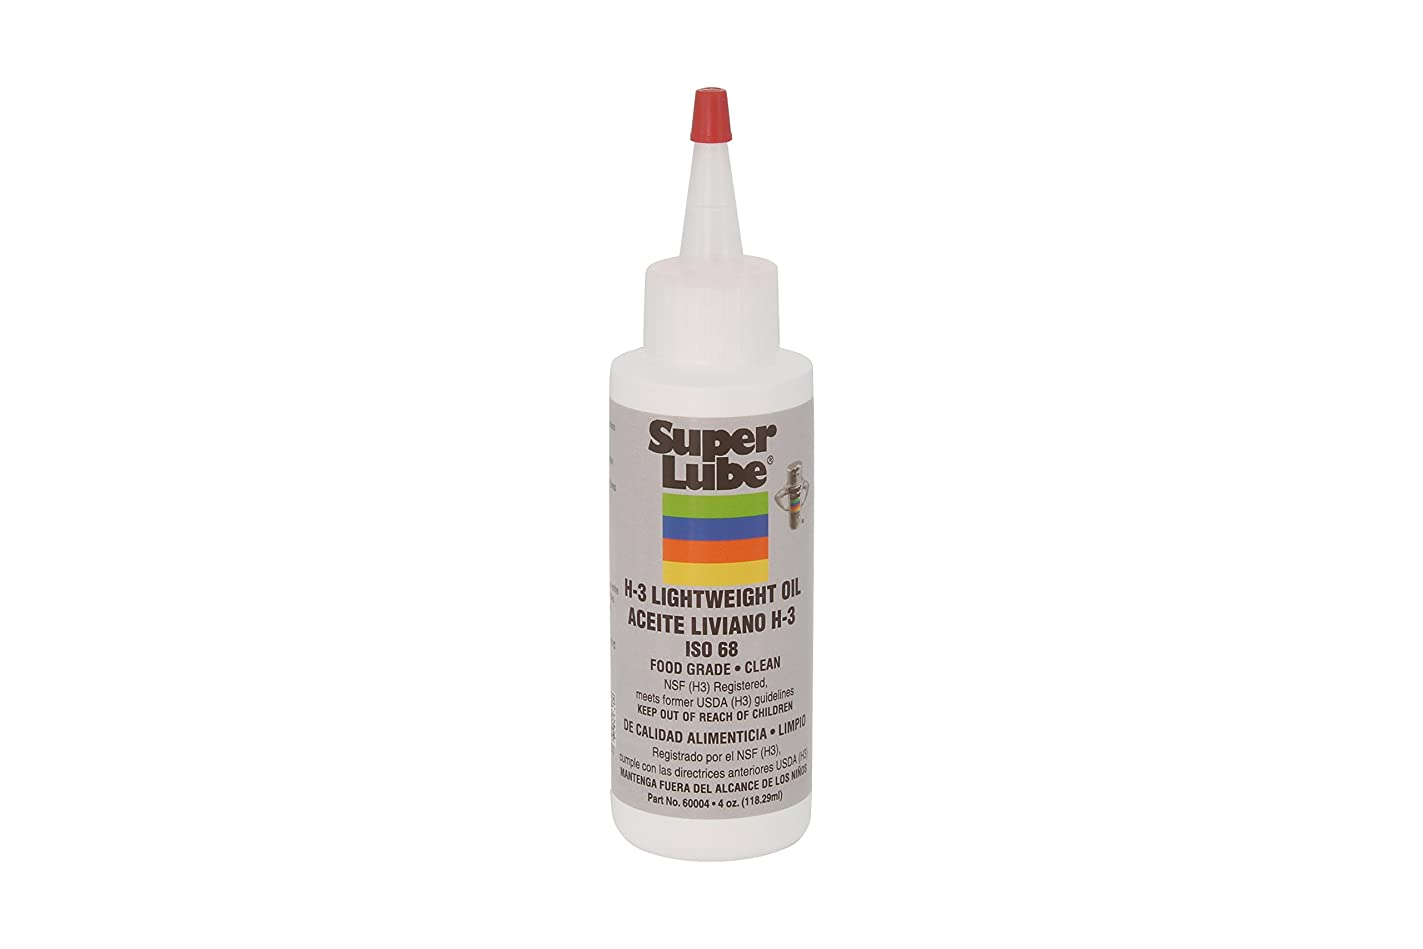 Super Lube 60004 H3 Lightweight Oil, Translucent Clear